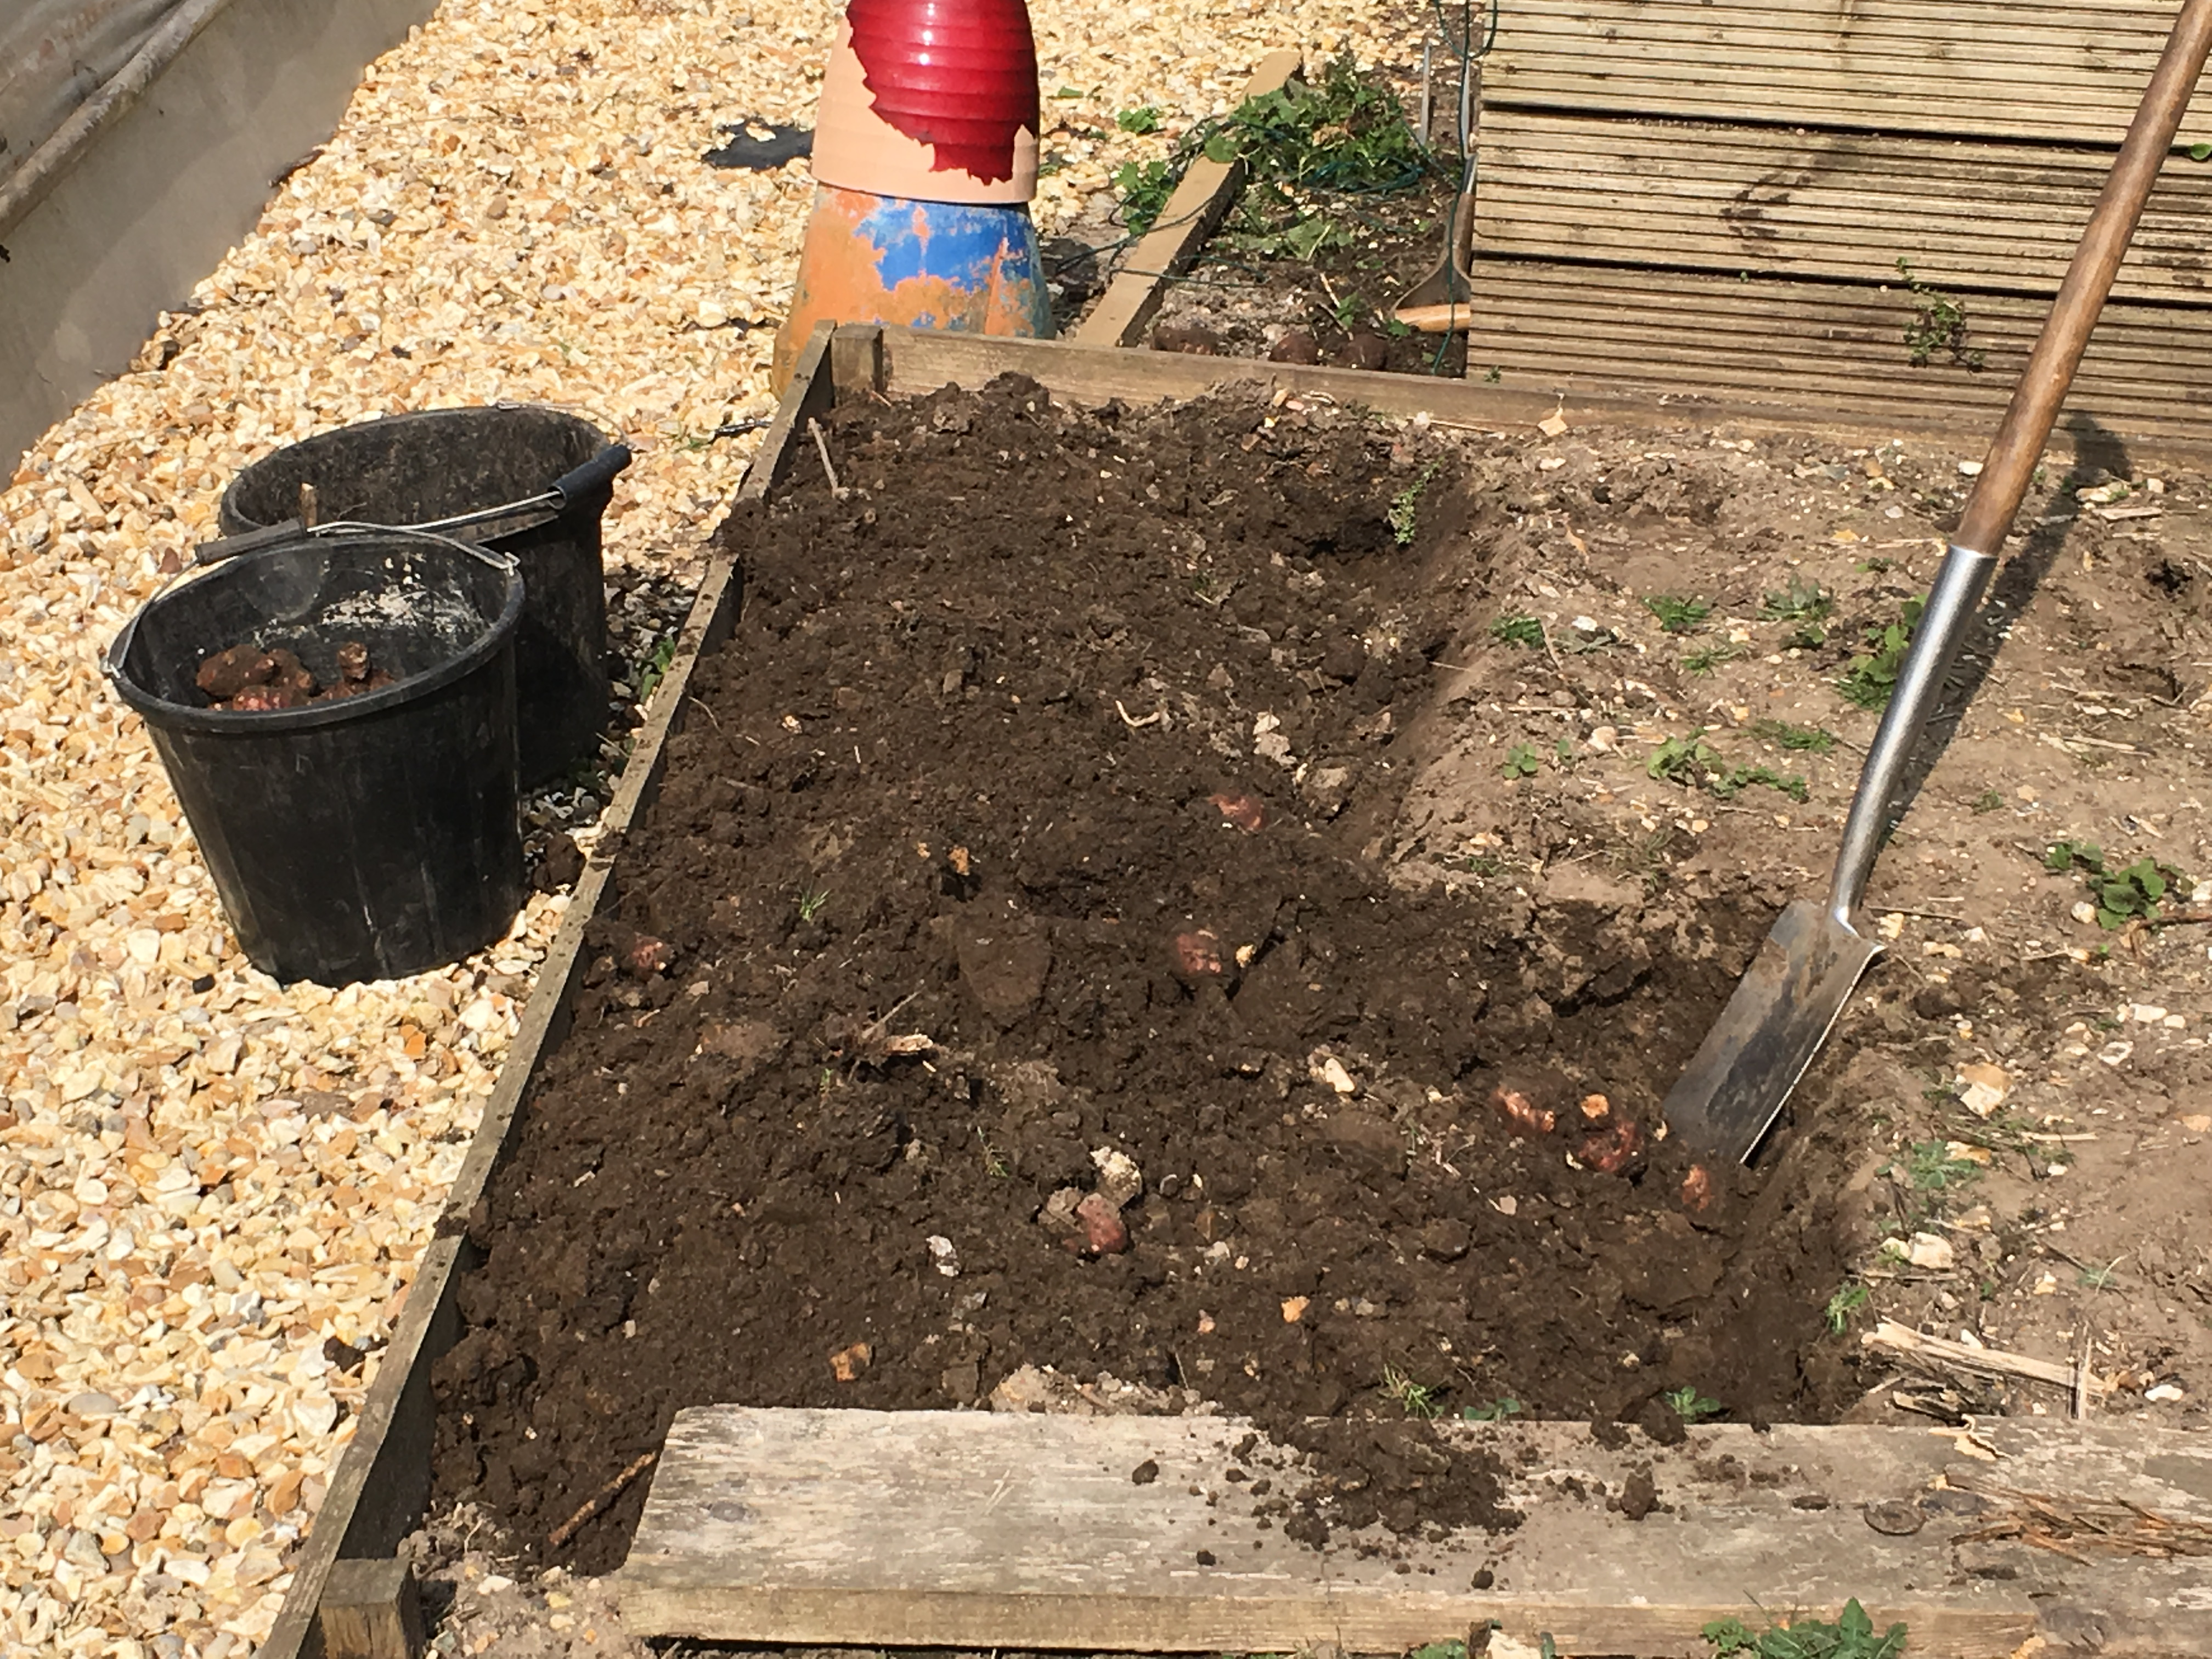 Digging over the bed to unearth any remaining tubers